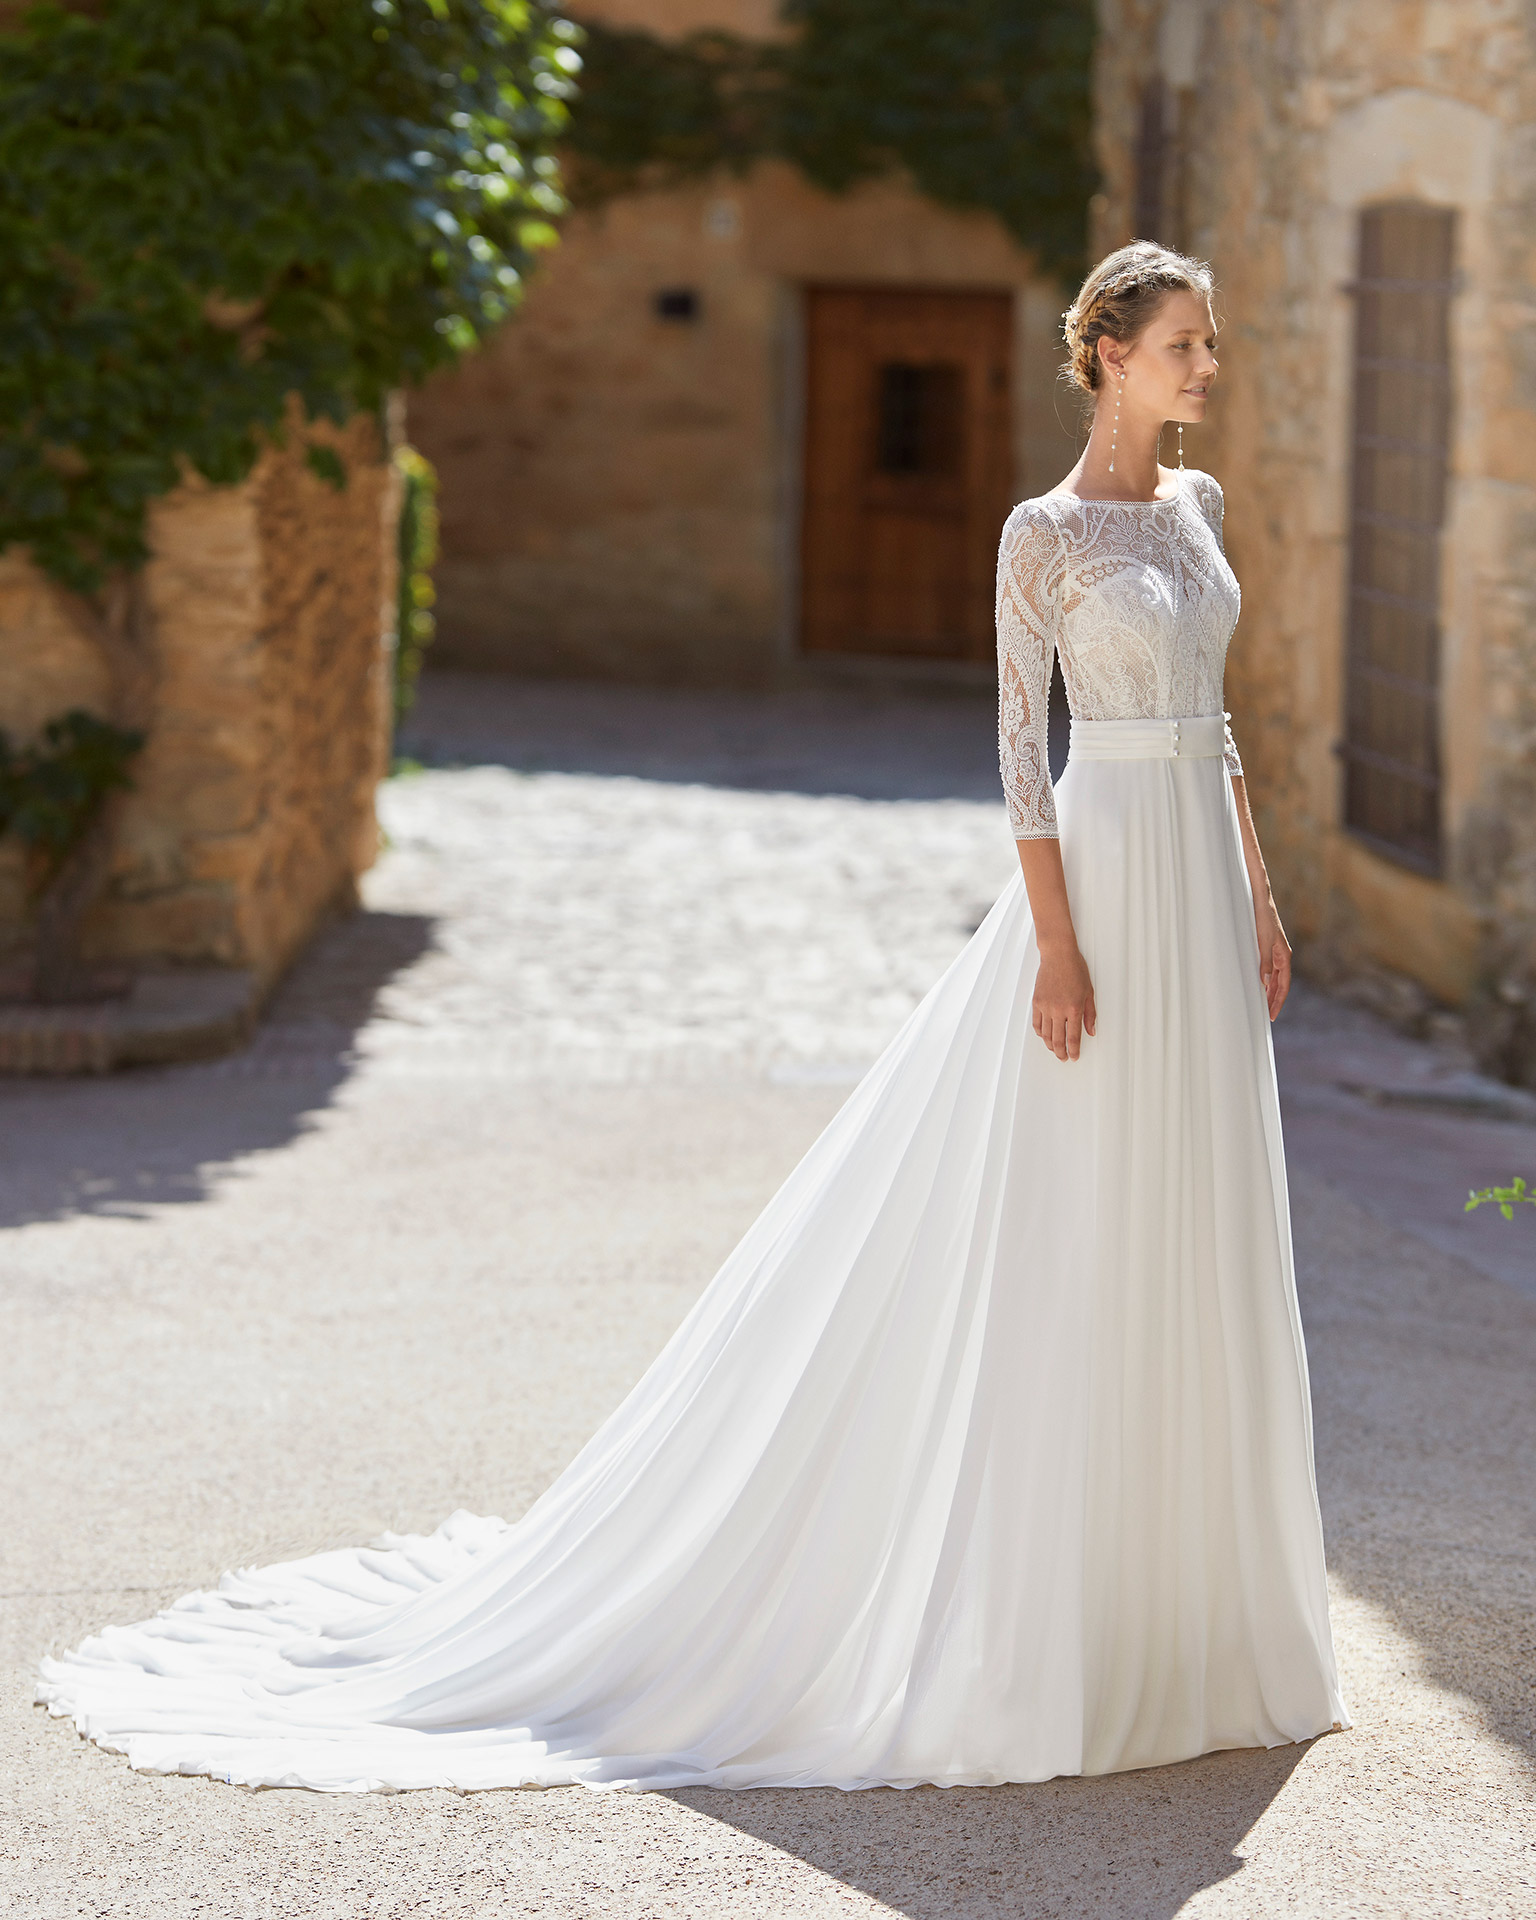 Boho-chic ballgown-style wedding dress with a lace bodice; with a bateau neckline, open back and three-quarter sleeves. Alma Novia model in georgette. 2022 ALMANOVIA Collection.